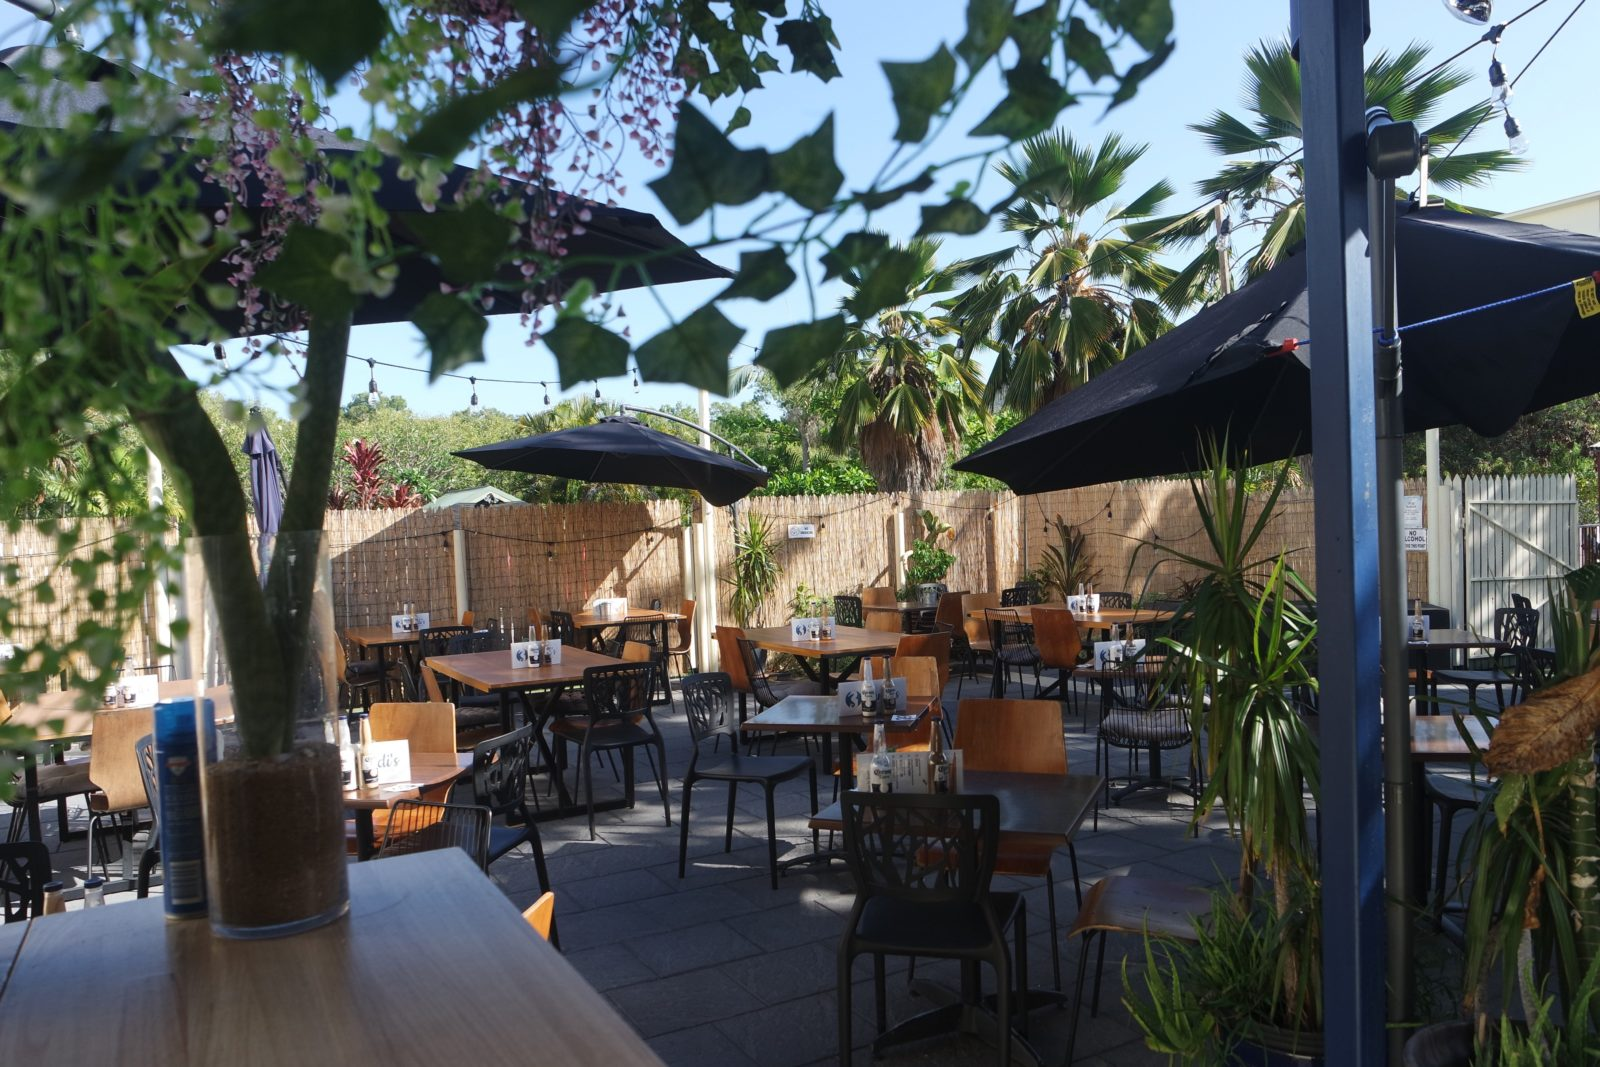 Sandi's outdoor area and bar